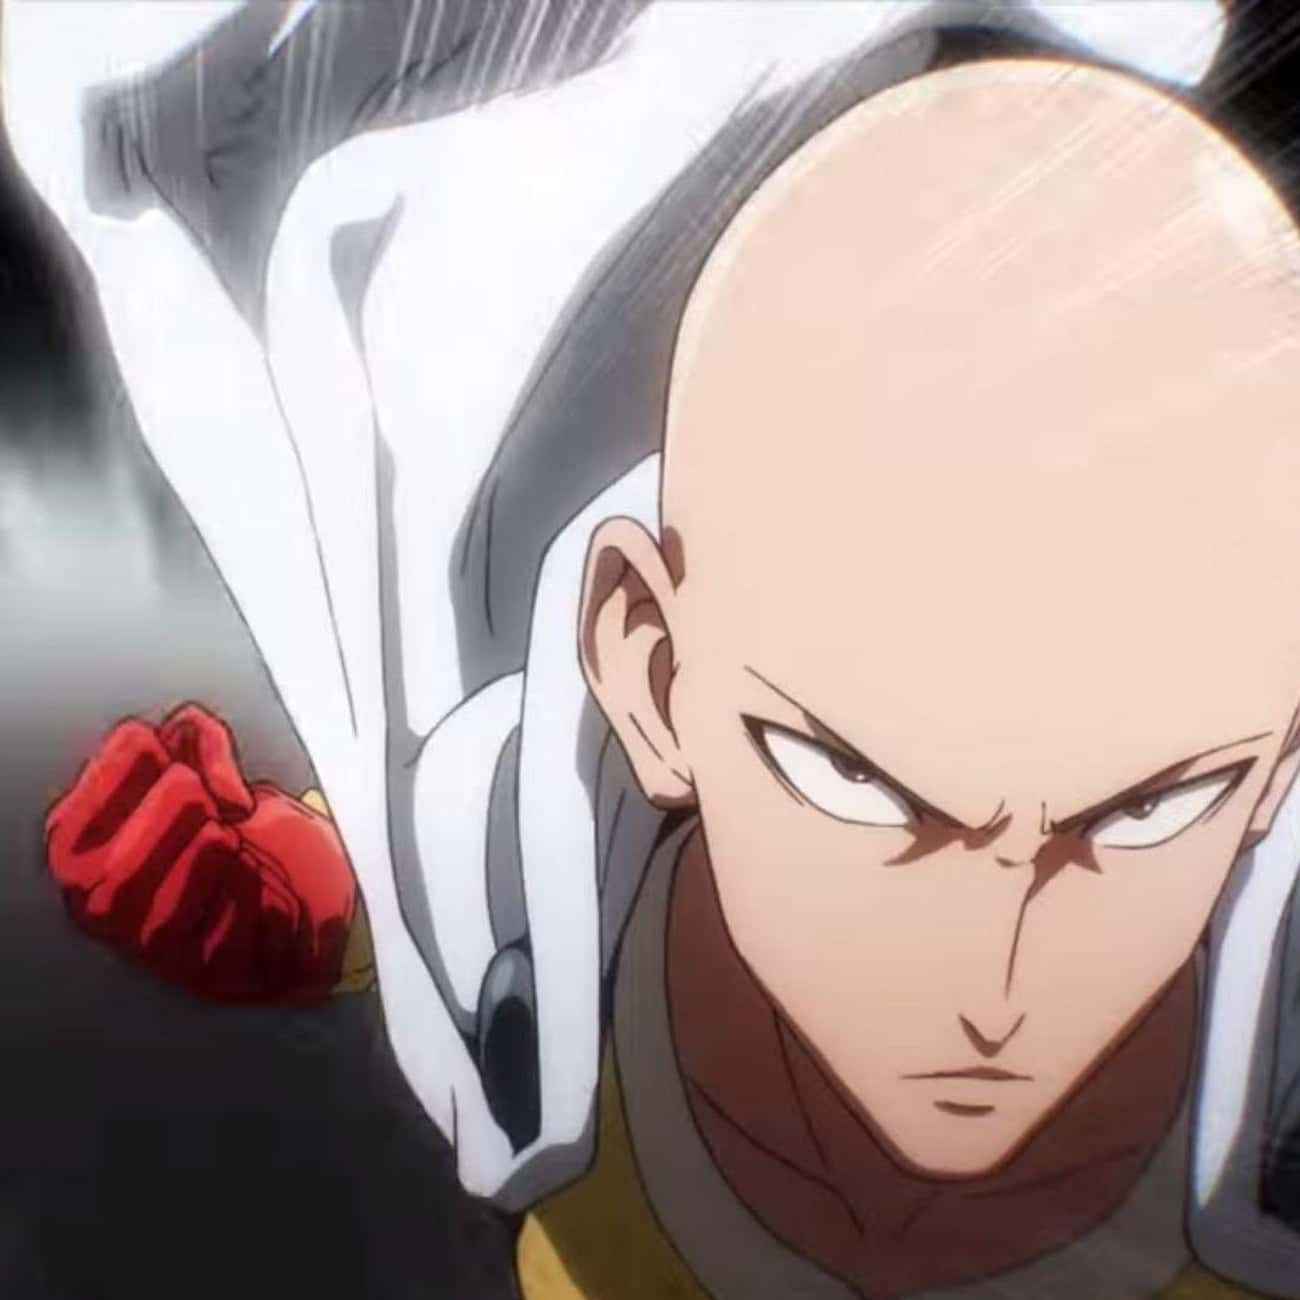 Really Want To Be Strong is listed (or ranked) 1 on the list The Best Saitama Quotes From One Punch Man